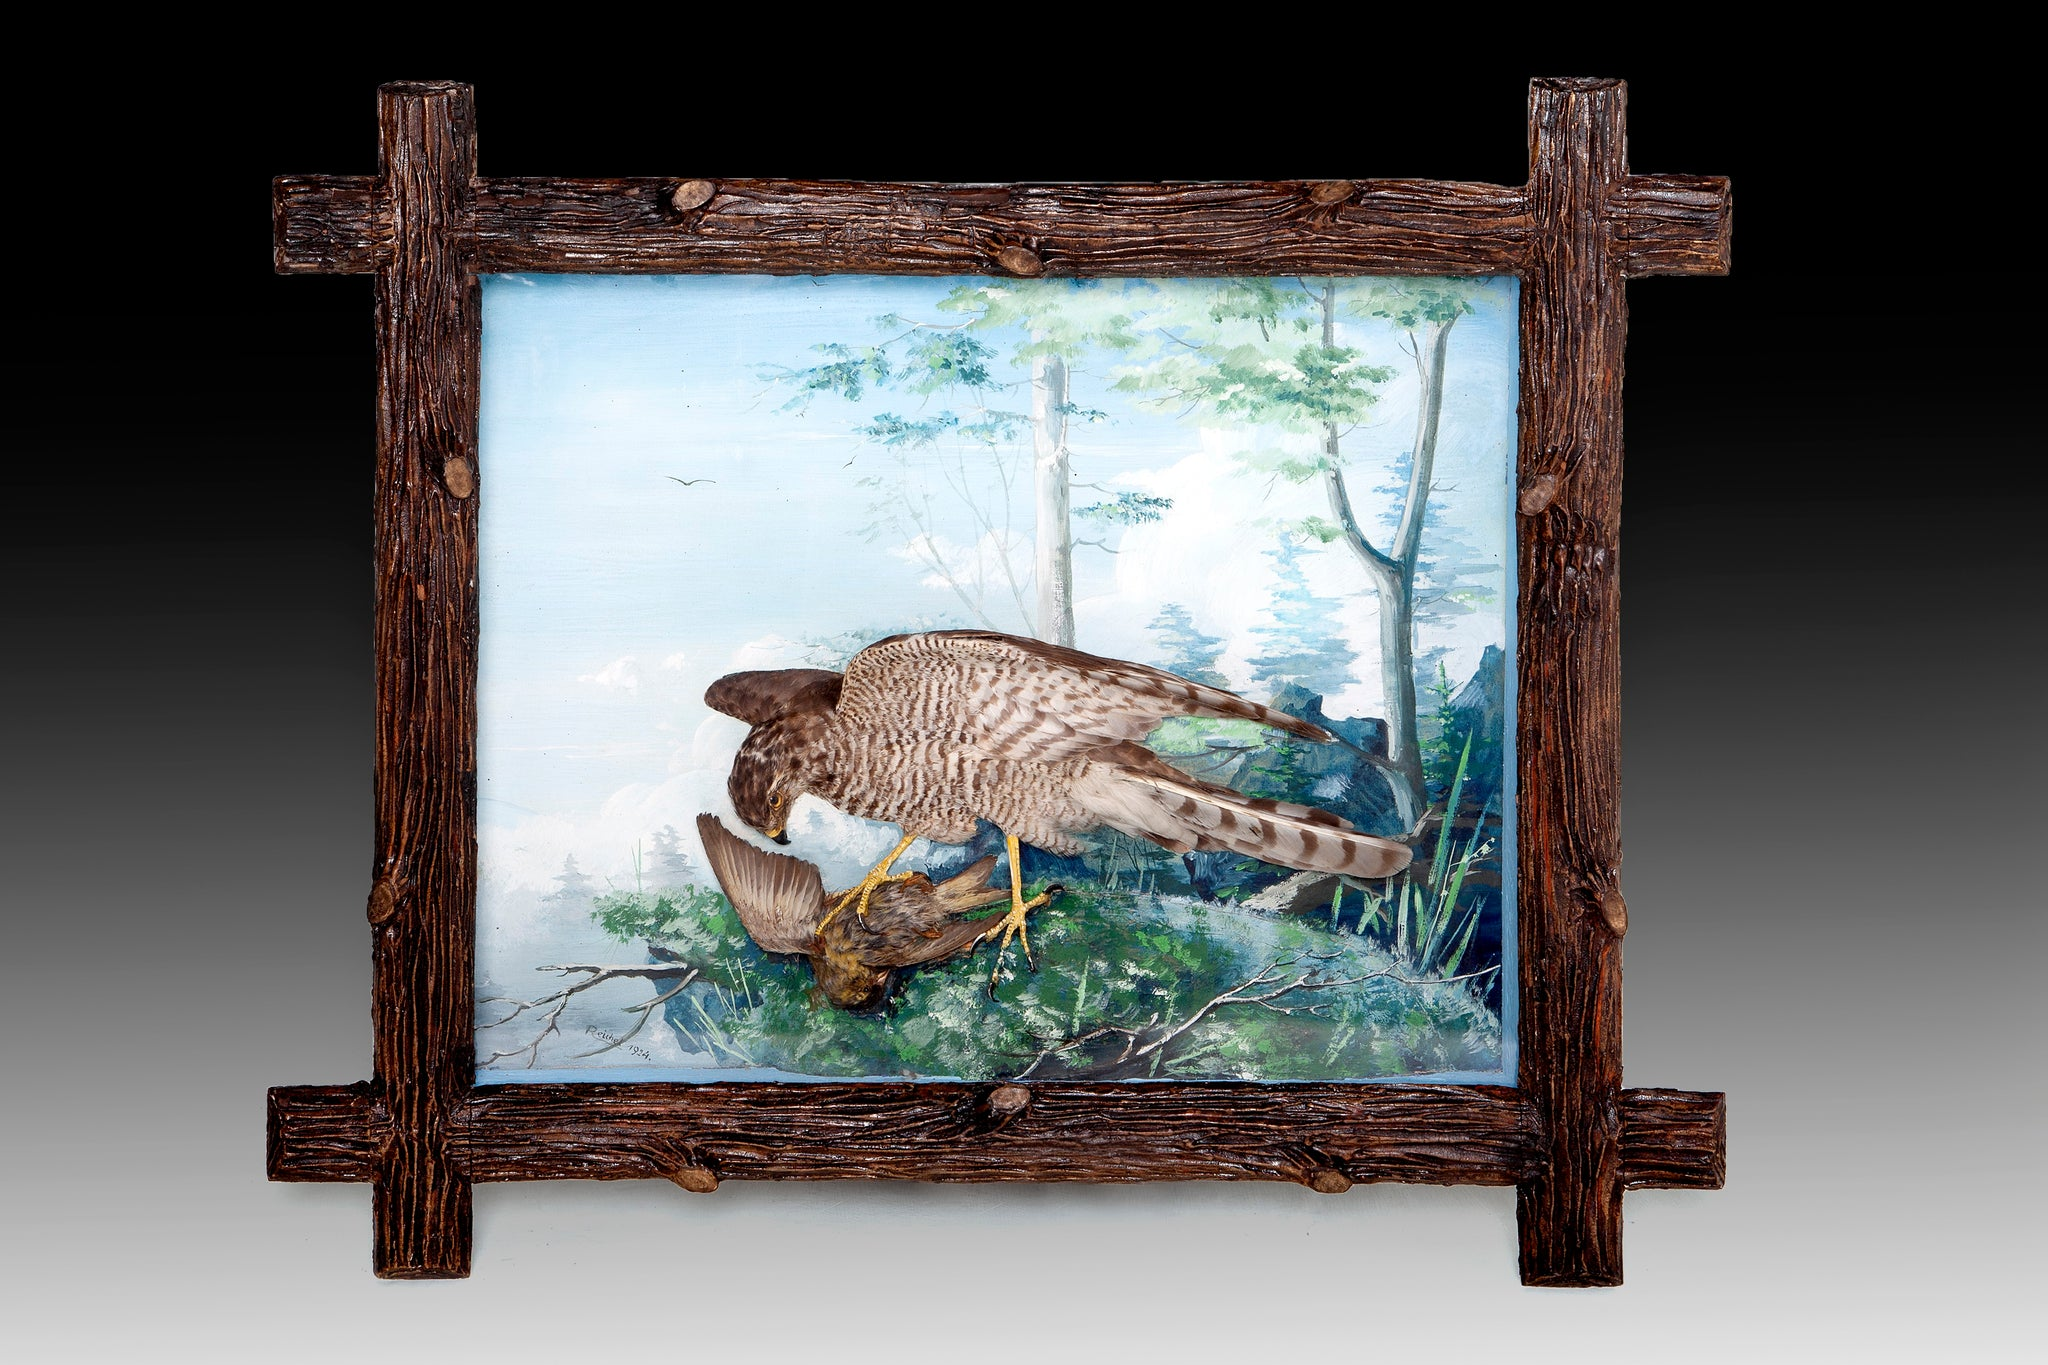 Framed Collection of 9 Taxidermy Dioramas of Birds